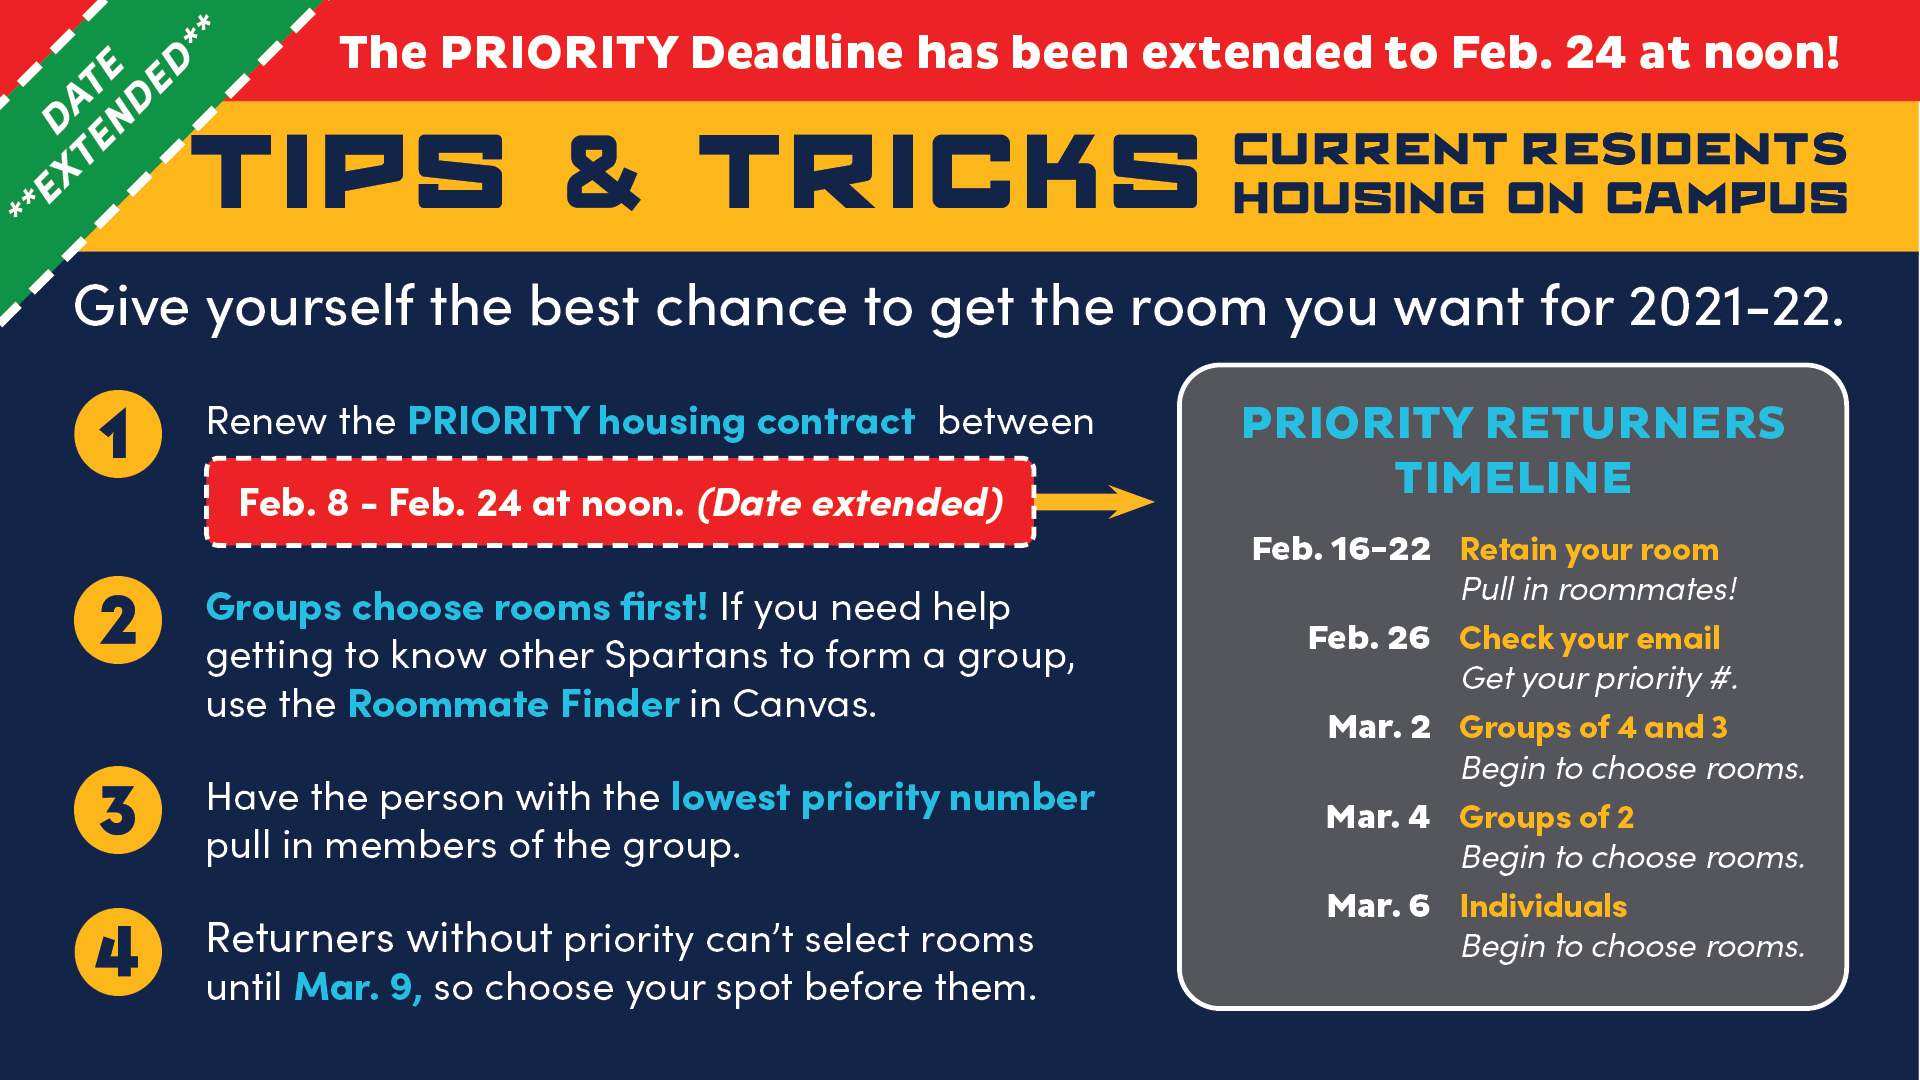 Uncg Calendar Spring 2022.Deadlines For Housing Application Self Assignment Housing And Residence Life At Uncg